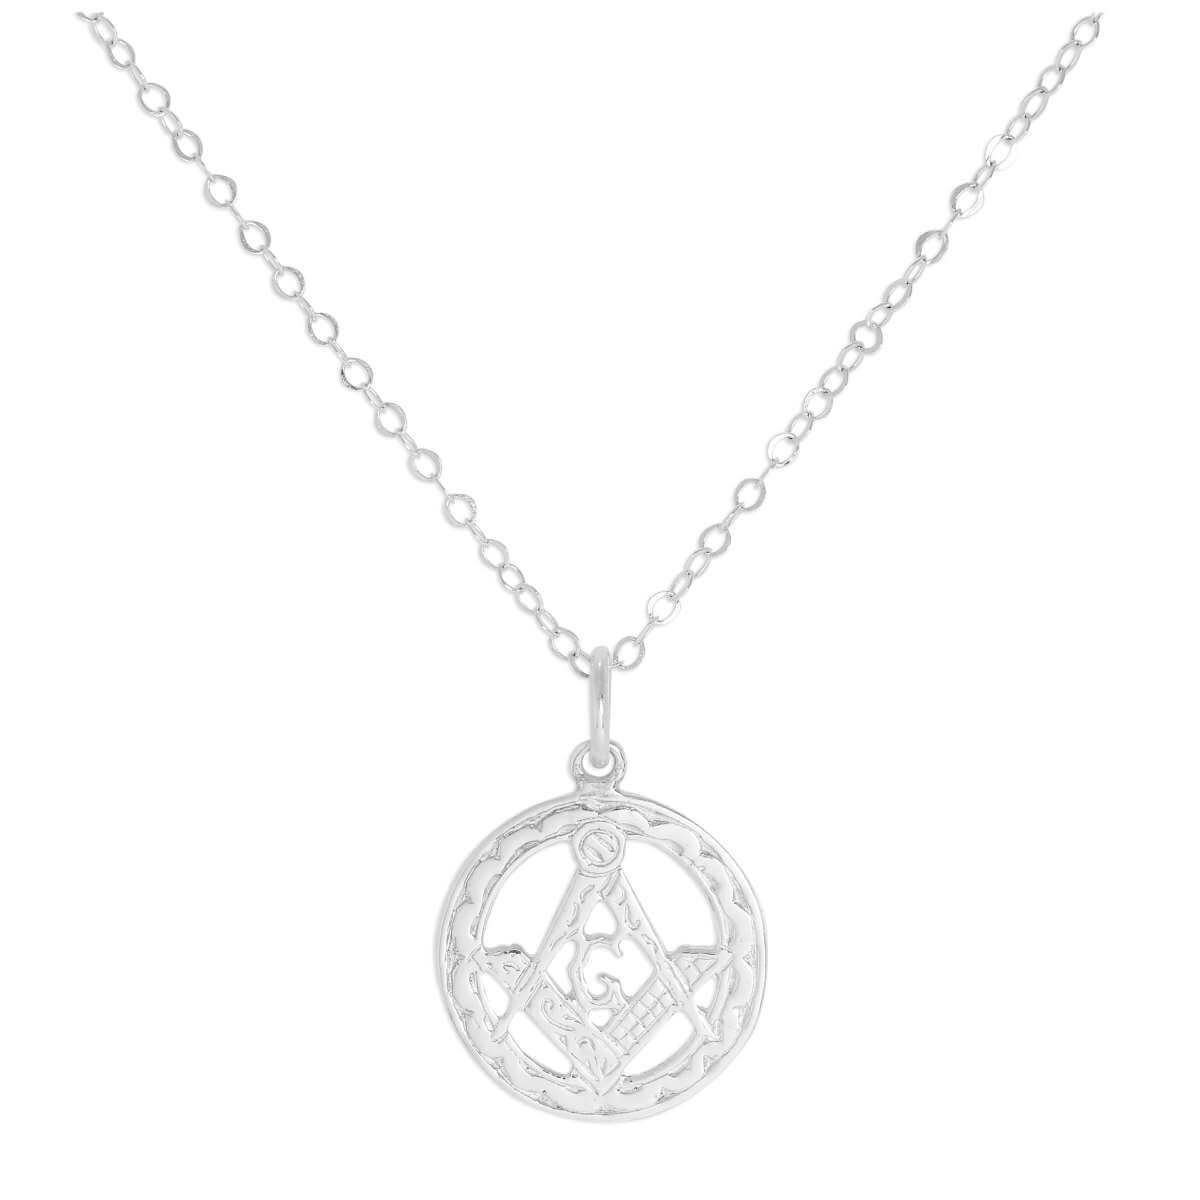 Sterling Silver Masonic Emblem Pendant on Chain 16 - 22 Inches